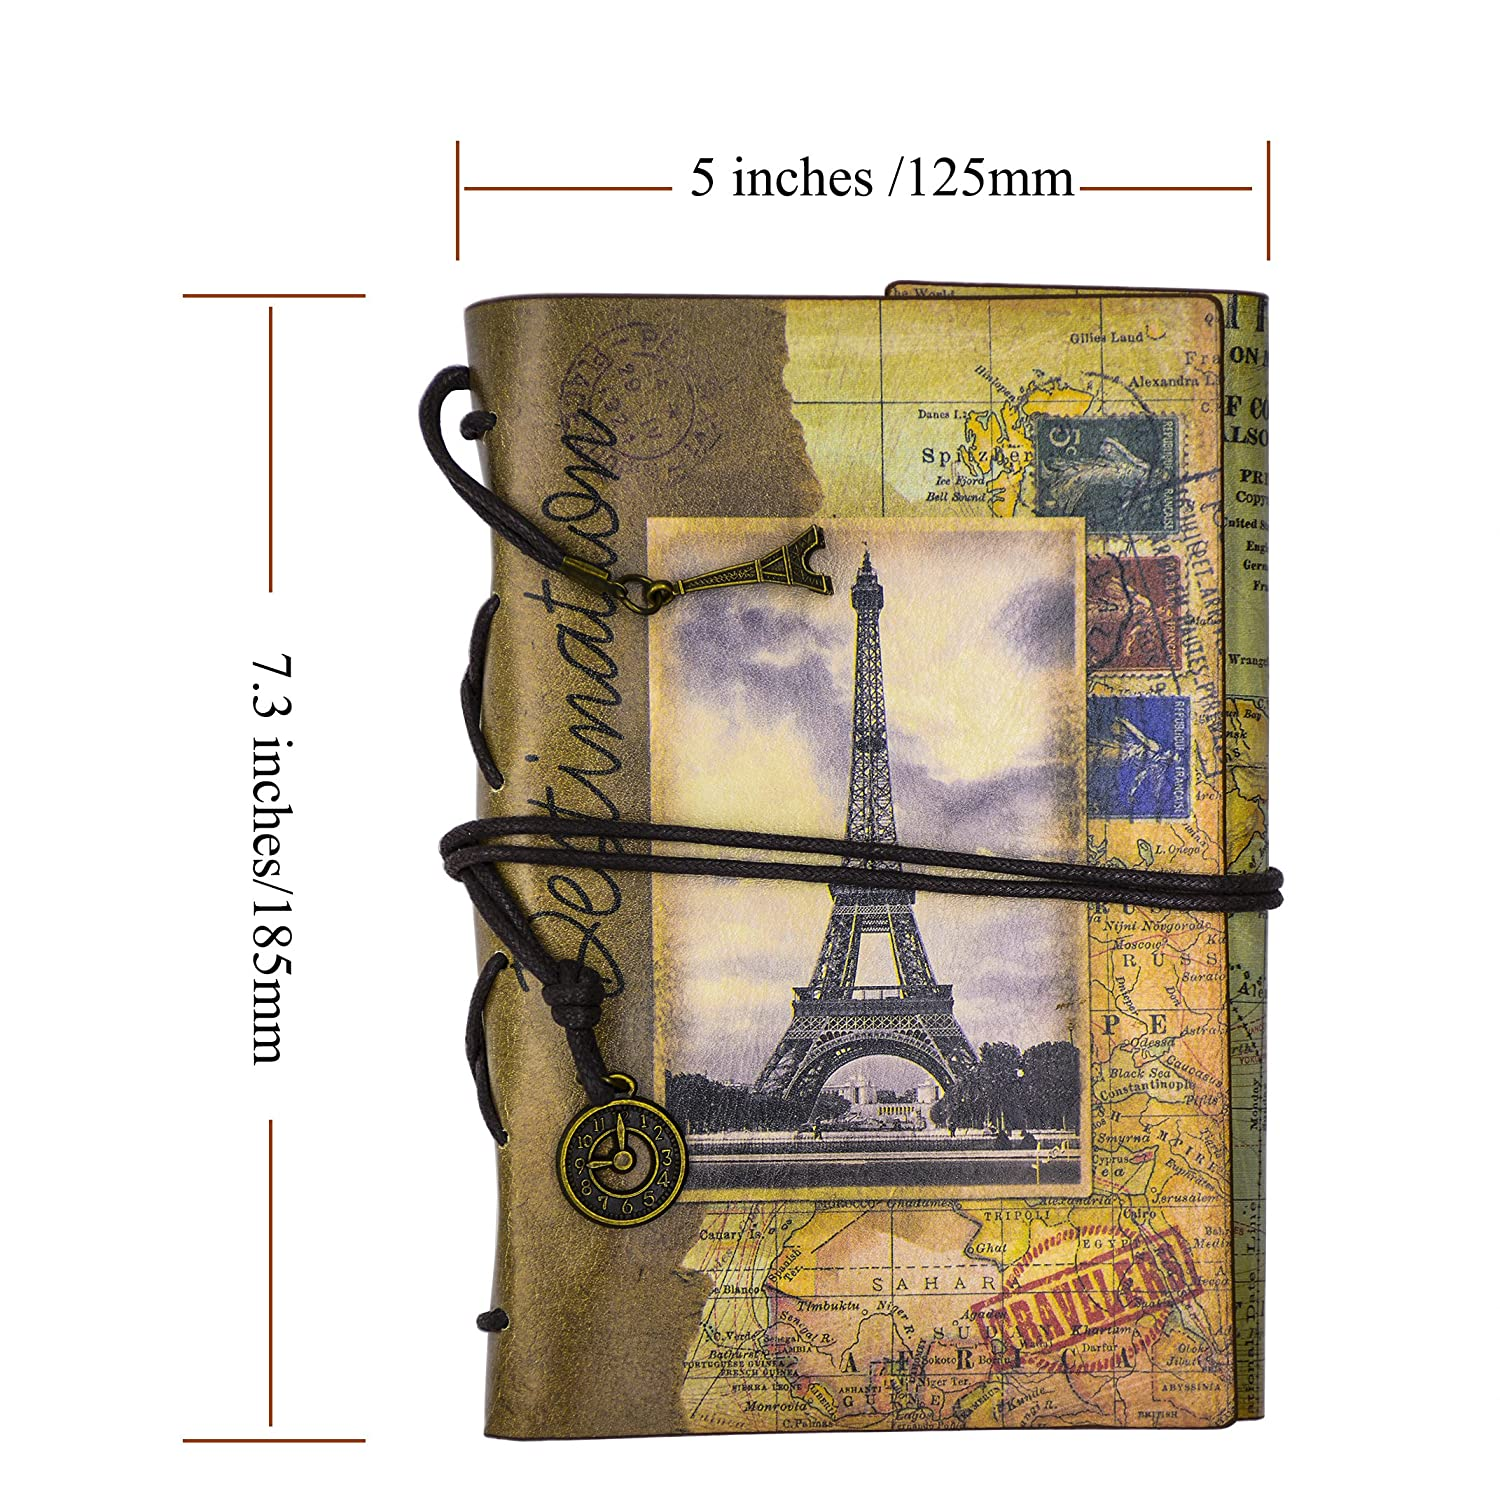 Travel Diary Book Green-stamp FX Classic Vintage Style Journal Writing Leather Refillable Spiral Notebook 7.3 x 5 Inches Perfect Gift as Art Sketchbook